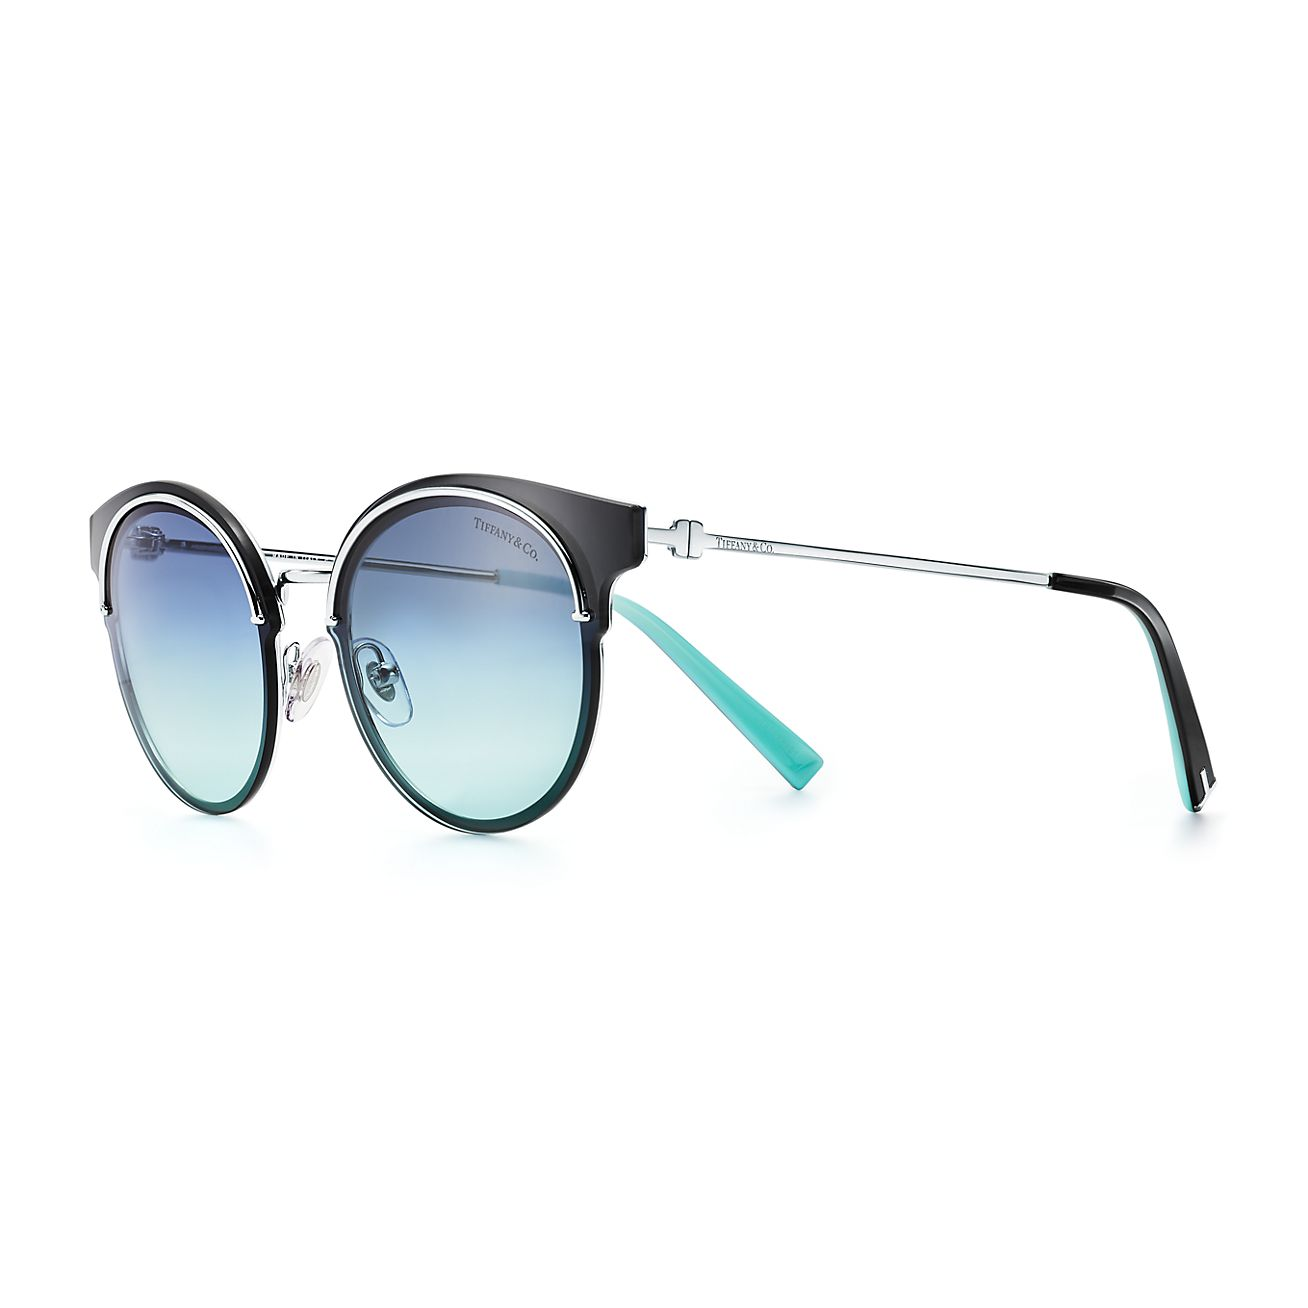 aad27b94e4ec Tiffany T round sunglasses in silver-colored metal.